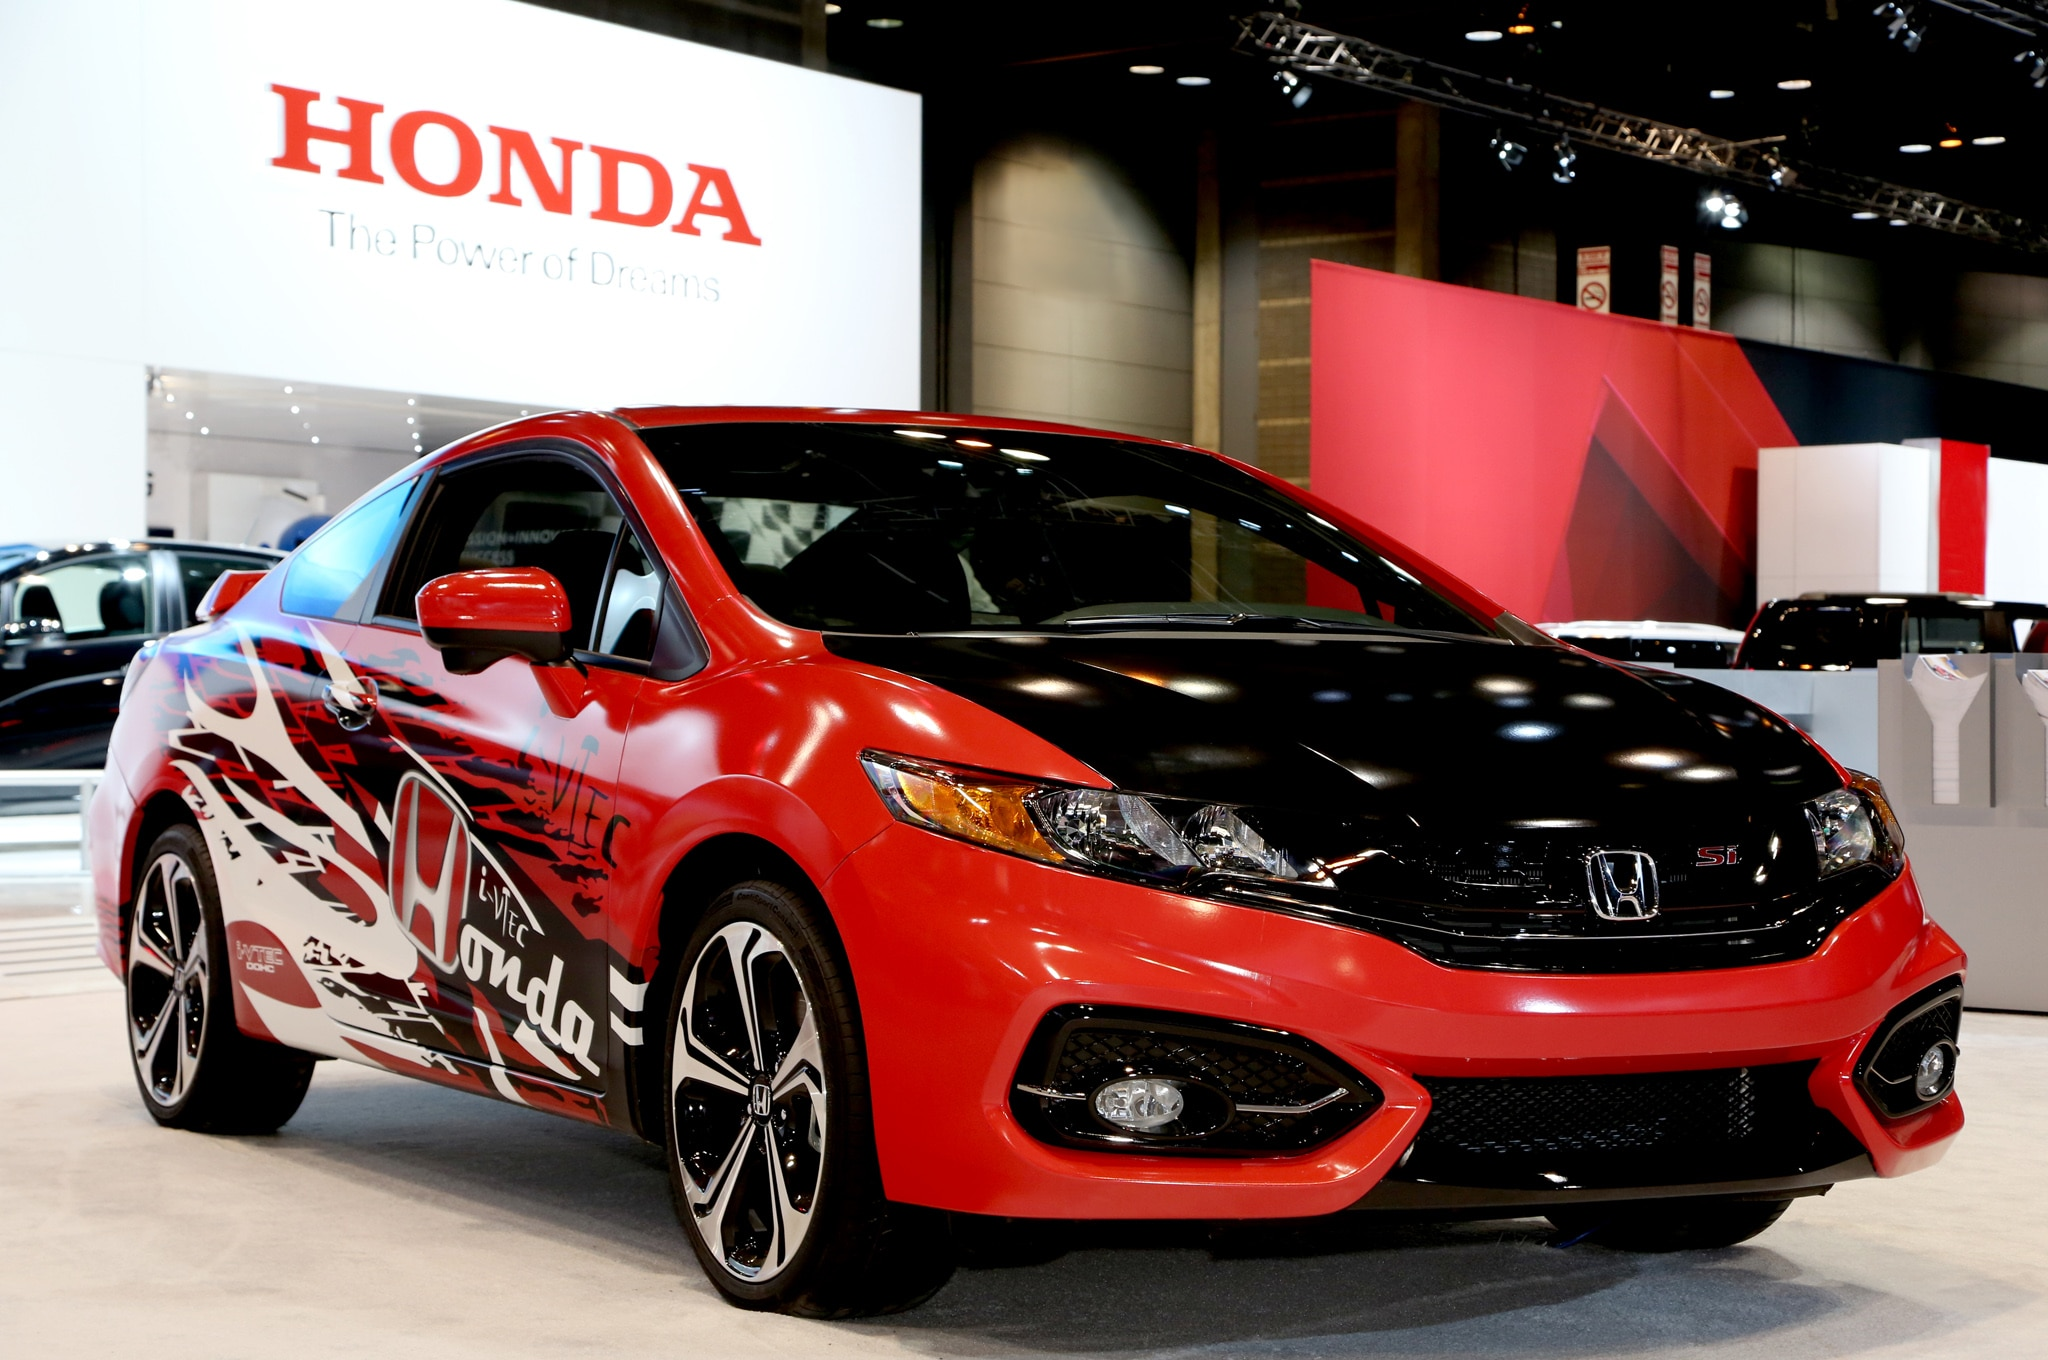 2014 Honda Civic Si Coupe Forza Design Chicago Front Three Quarter1